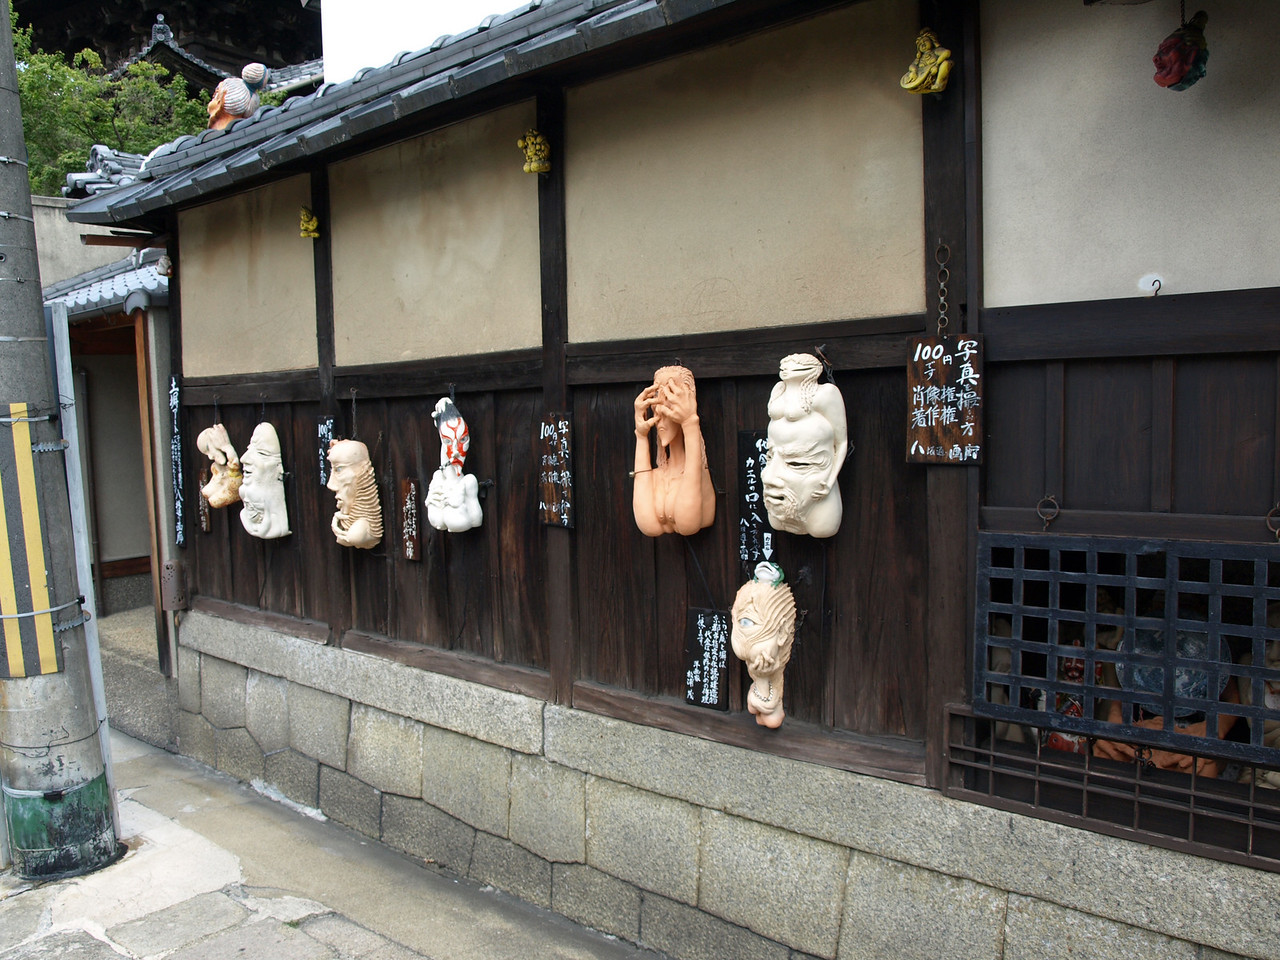 Before we reach the pagoda, we check out this little shop with some interesting and beautifully grotesque wall hangings.